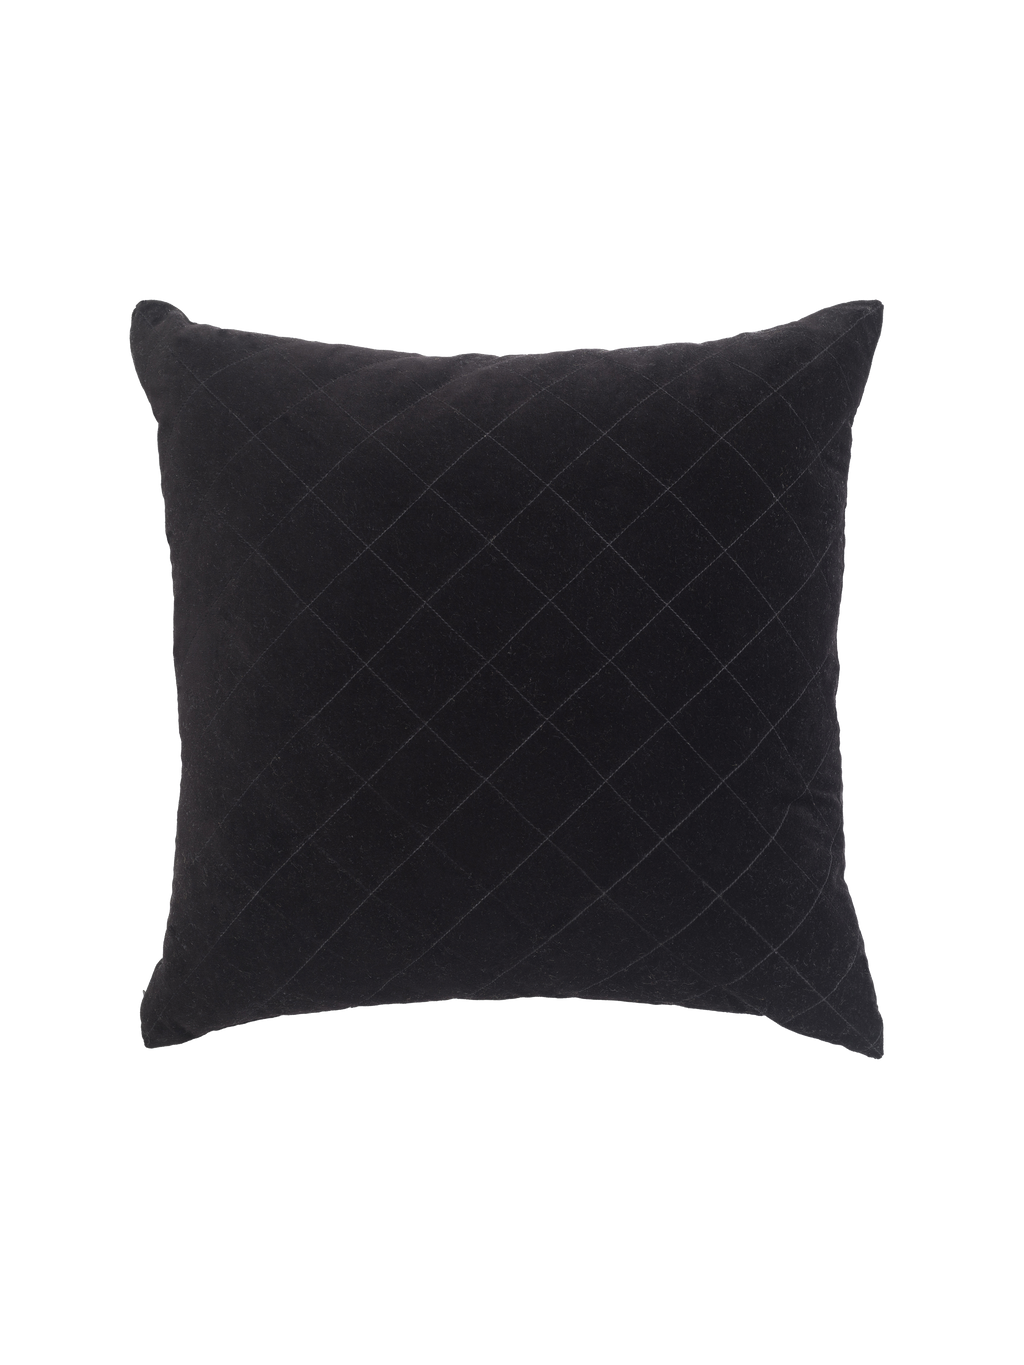 Velvet Quilted Black Cushion